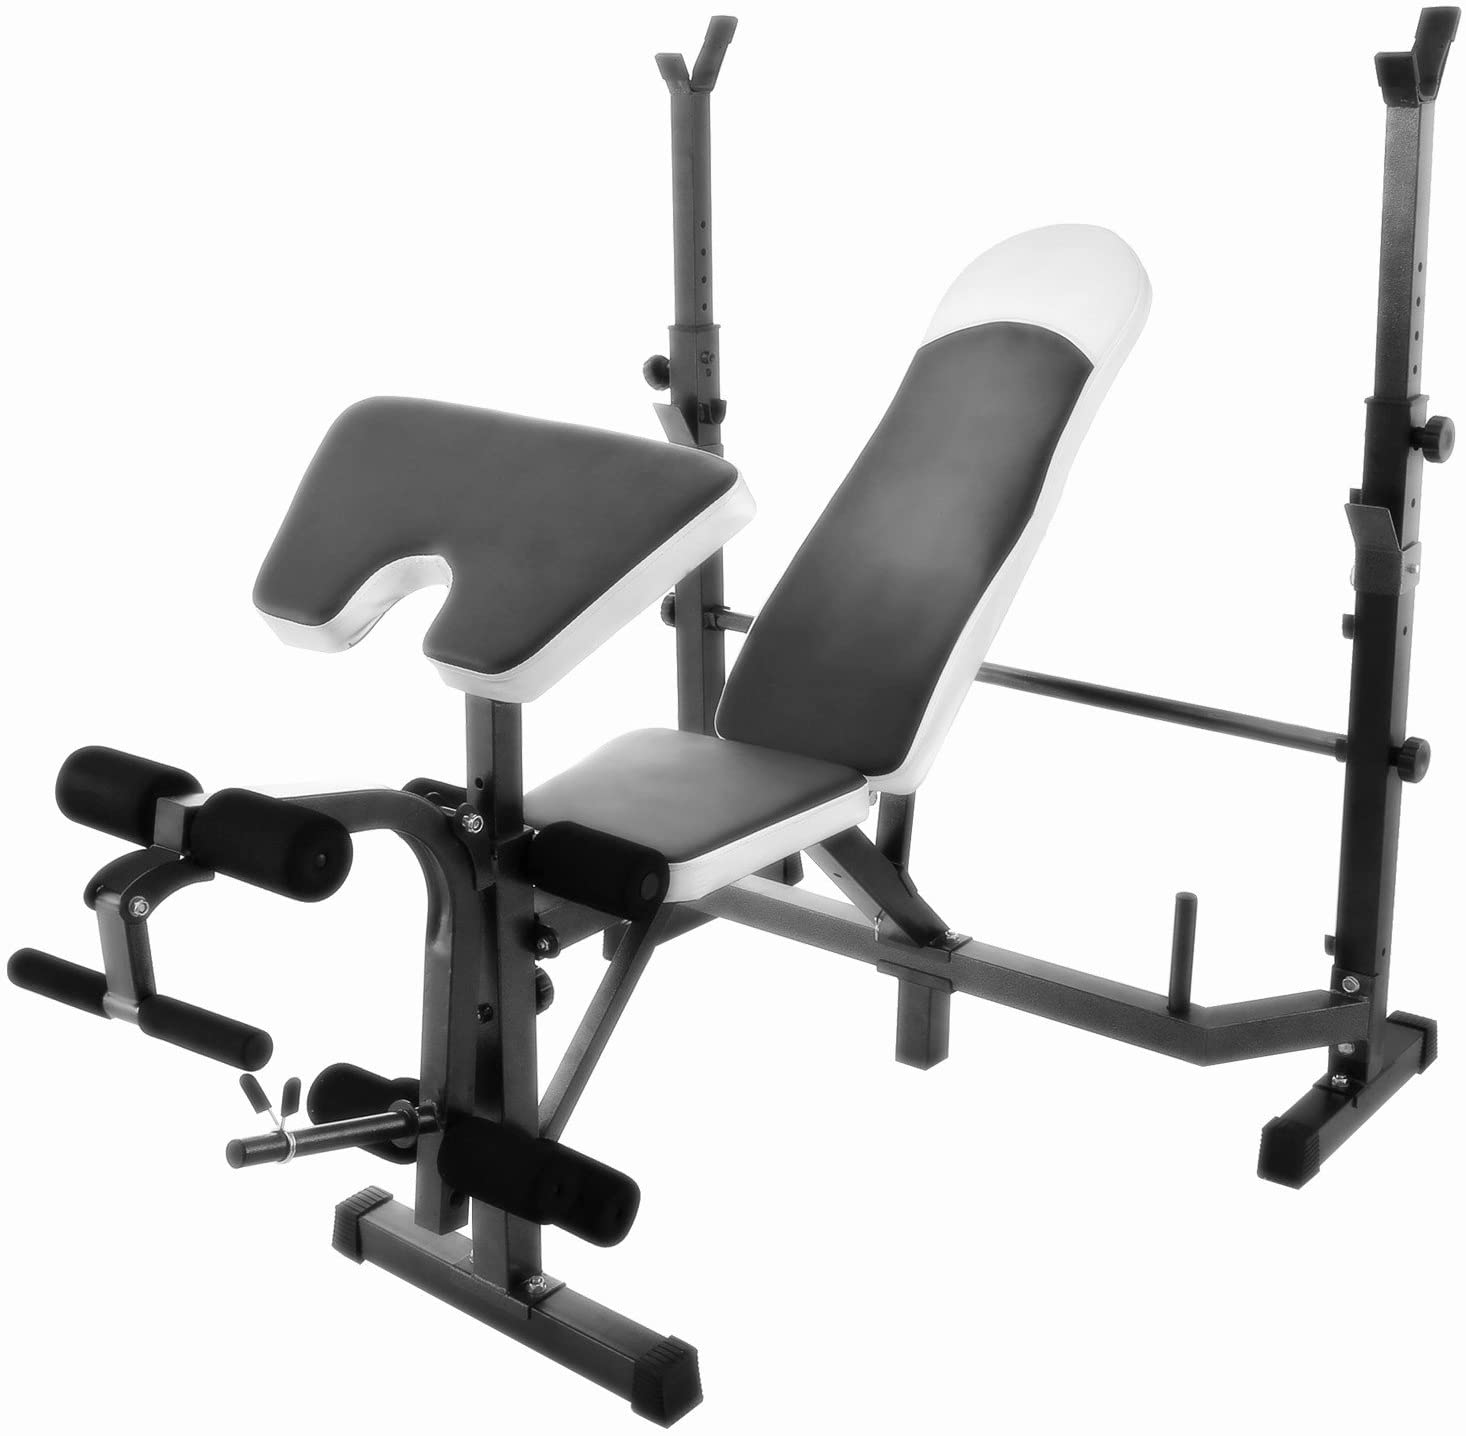 Popsport Weight Lifting Bench With Inbuilt Leg Extension